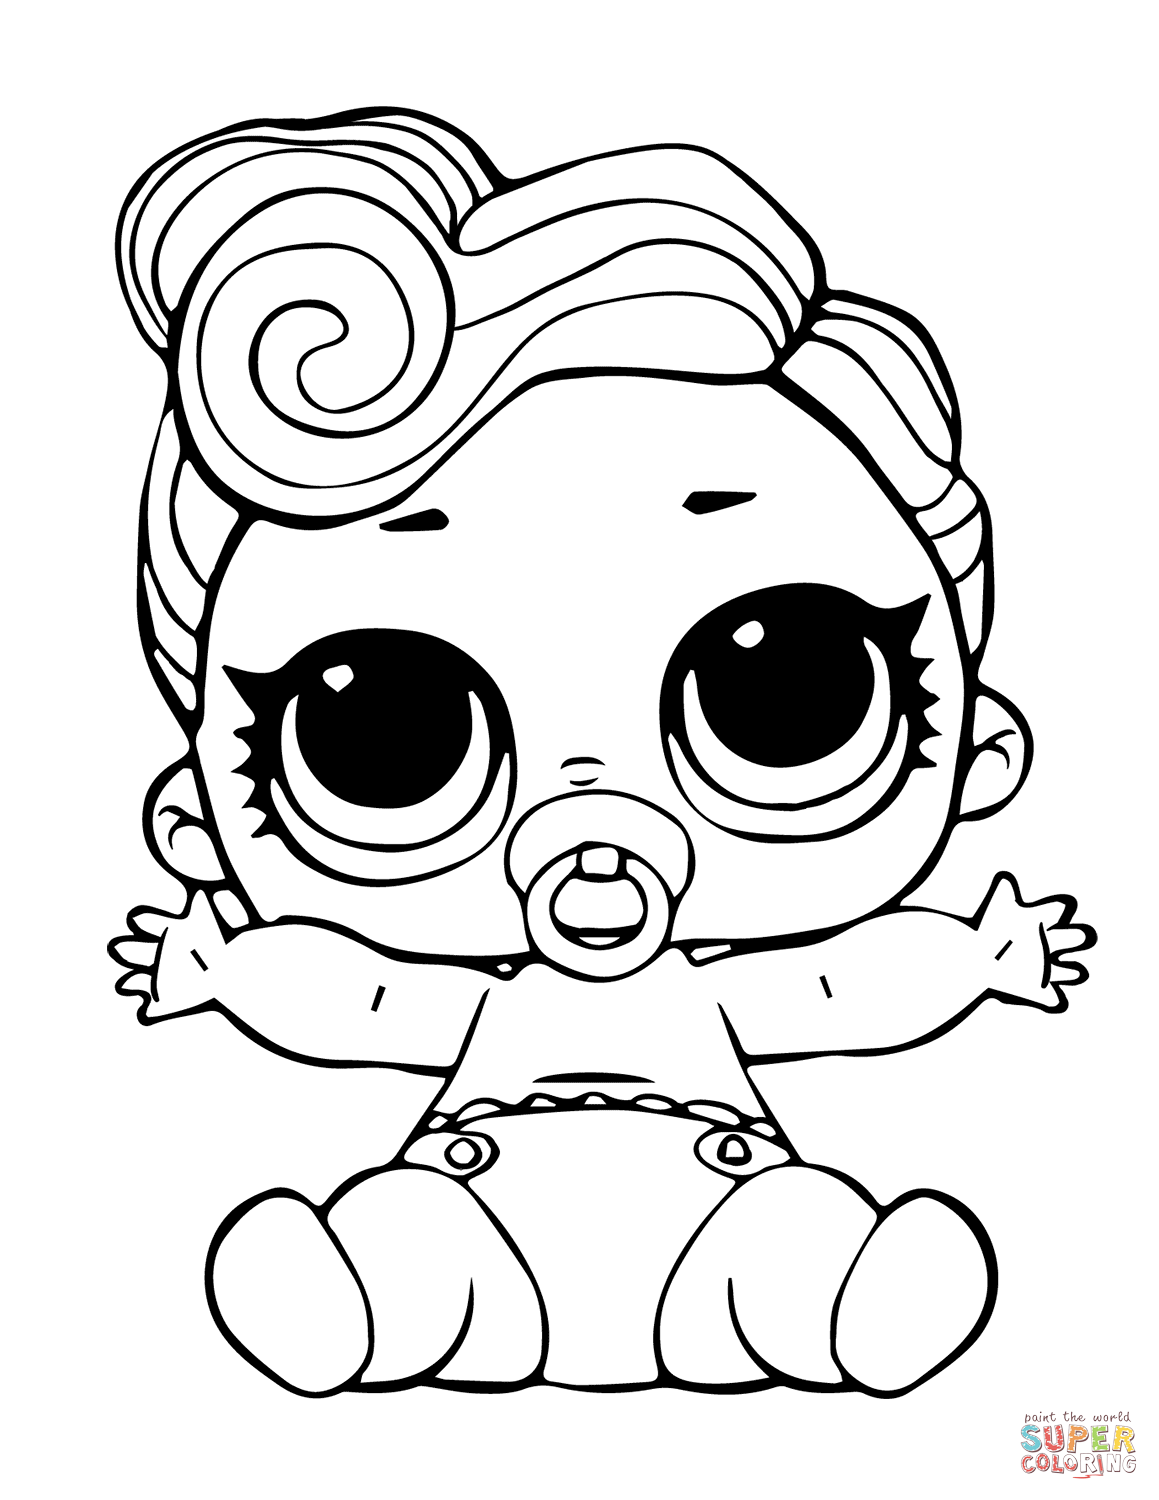 coloring images lol lol dolls coloring pages best coloring pages for kids coloring images lol